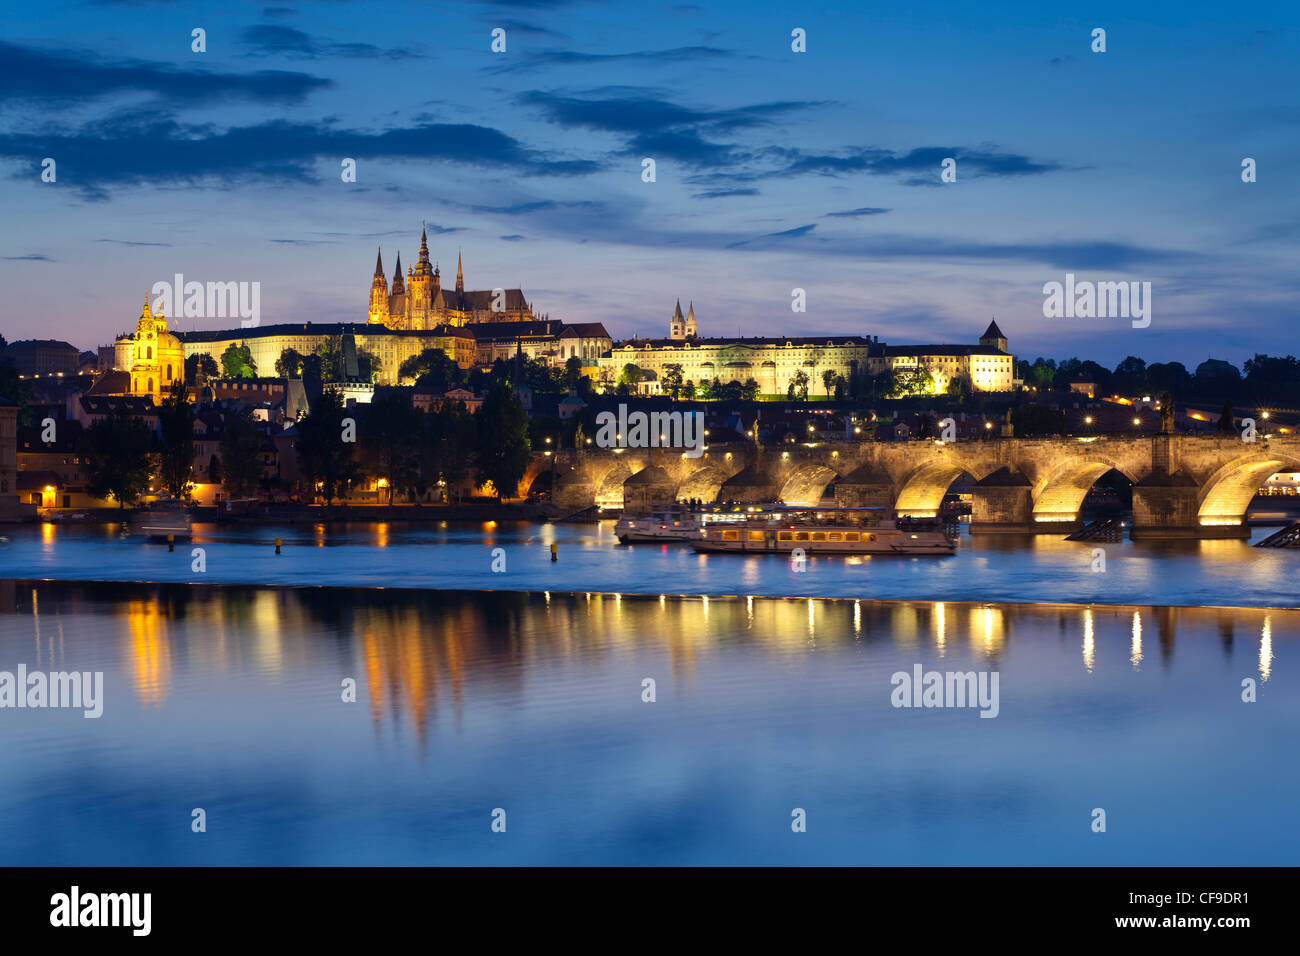 St. Vitus Cathedral, and the River Vltava at dusk, Prague, Czech Republic - Stock Image